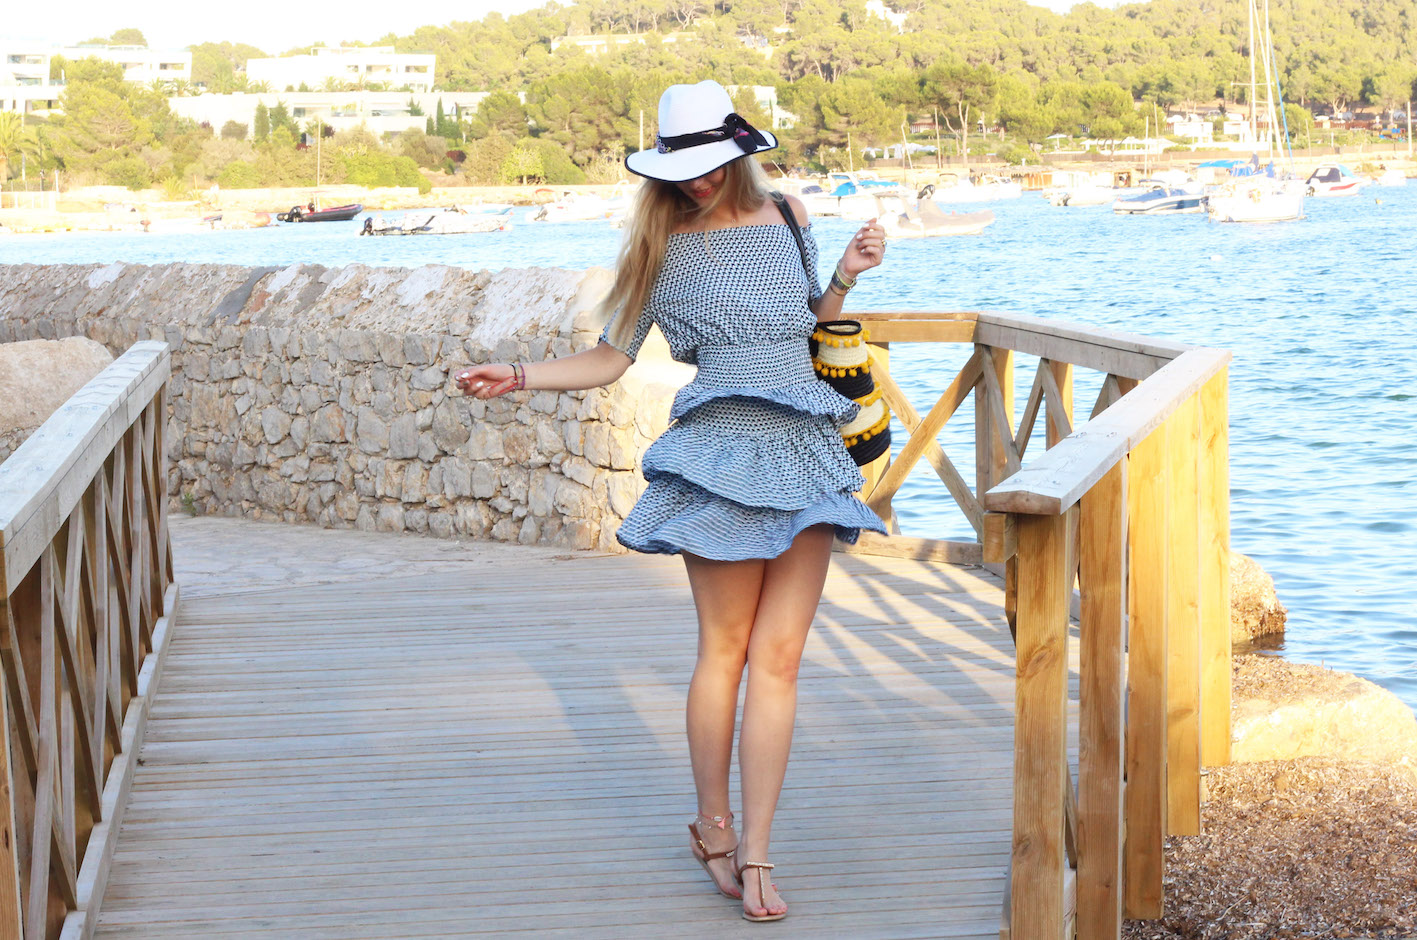 HOW TO TRANSFORM YOUR BEACH DRESS INTO A CITY LOOK